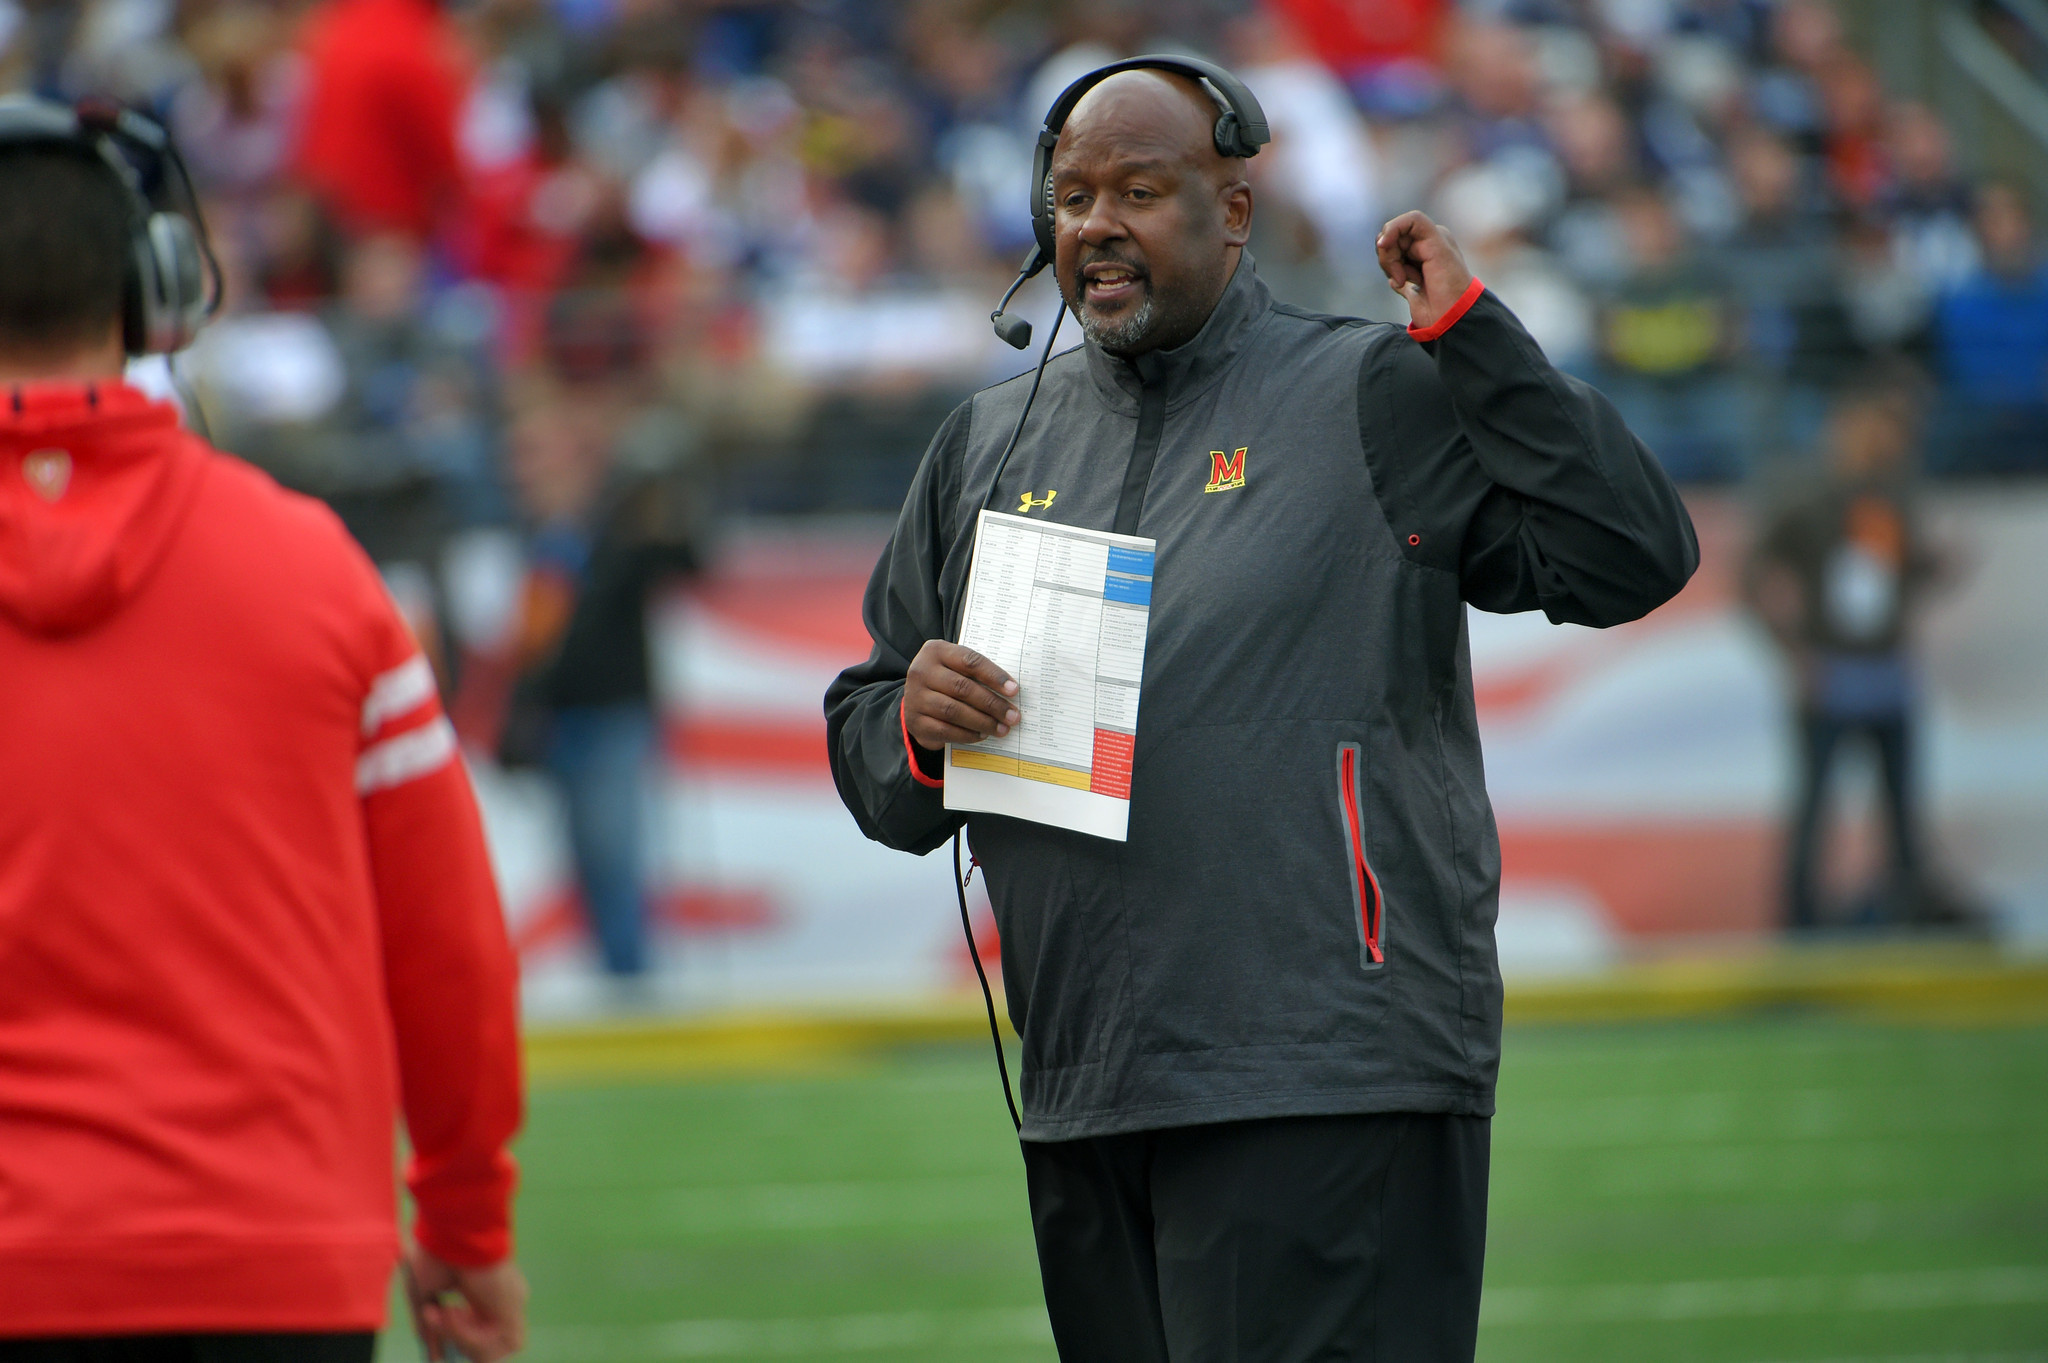 Bal-alabama-hires-former-terps-coach-mike-locksley-as-full-time-offensive-assistant-coach-20170116